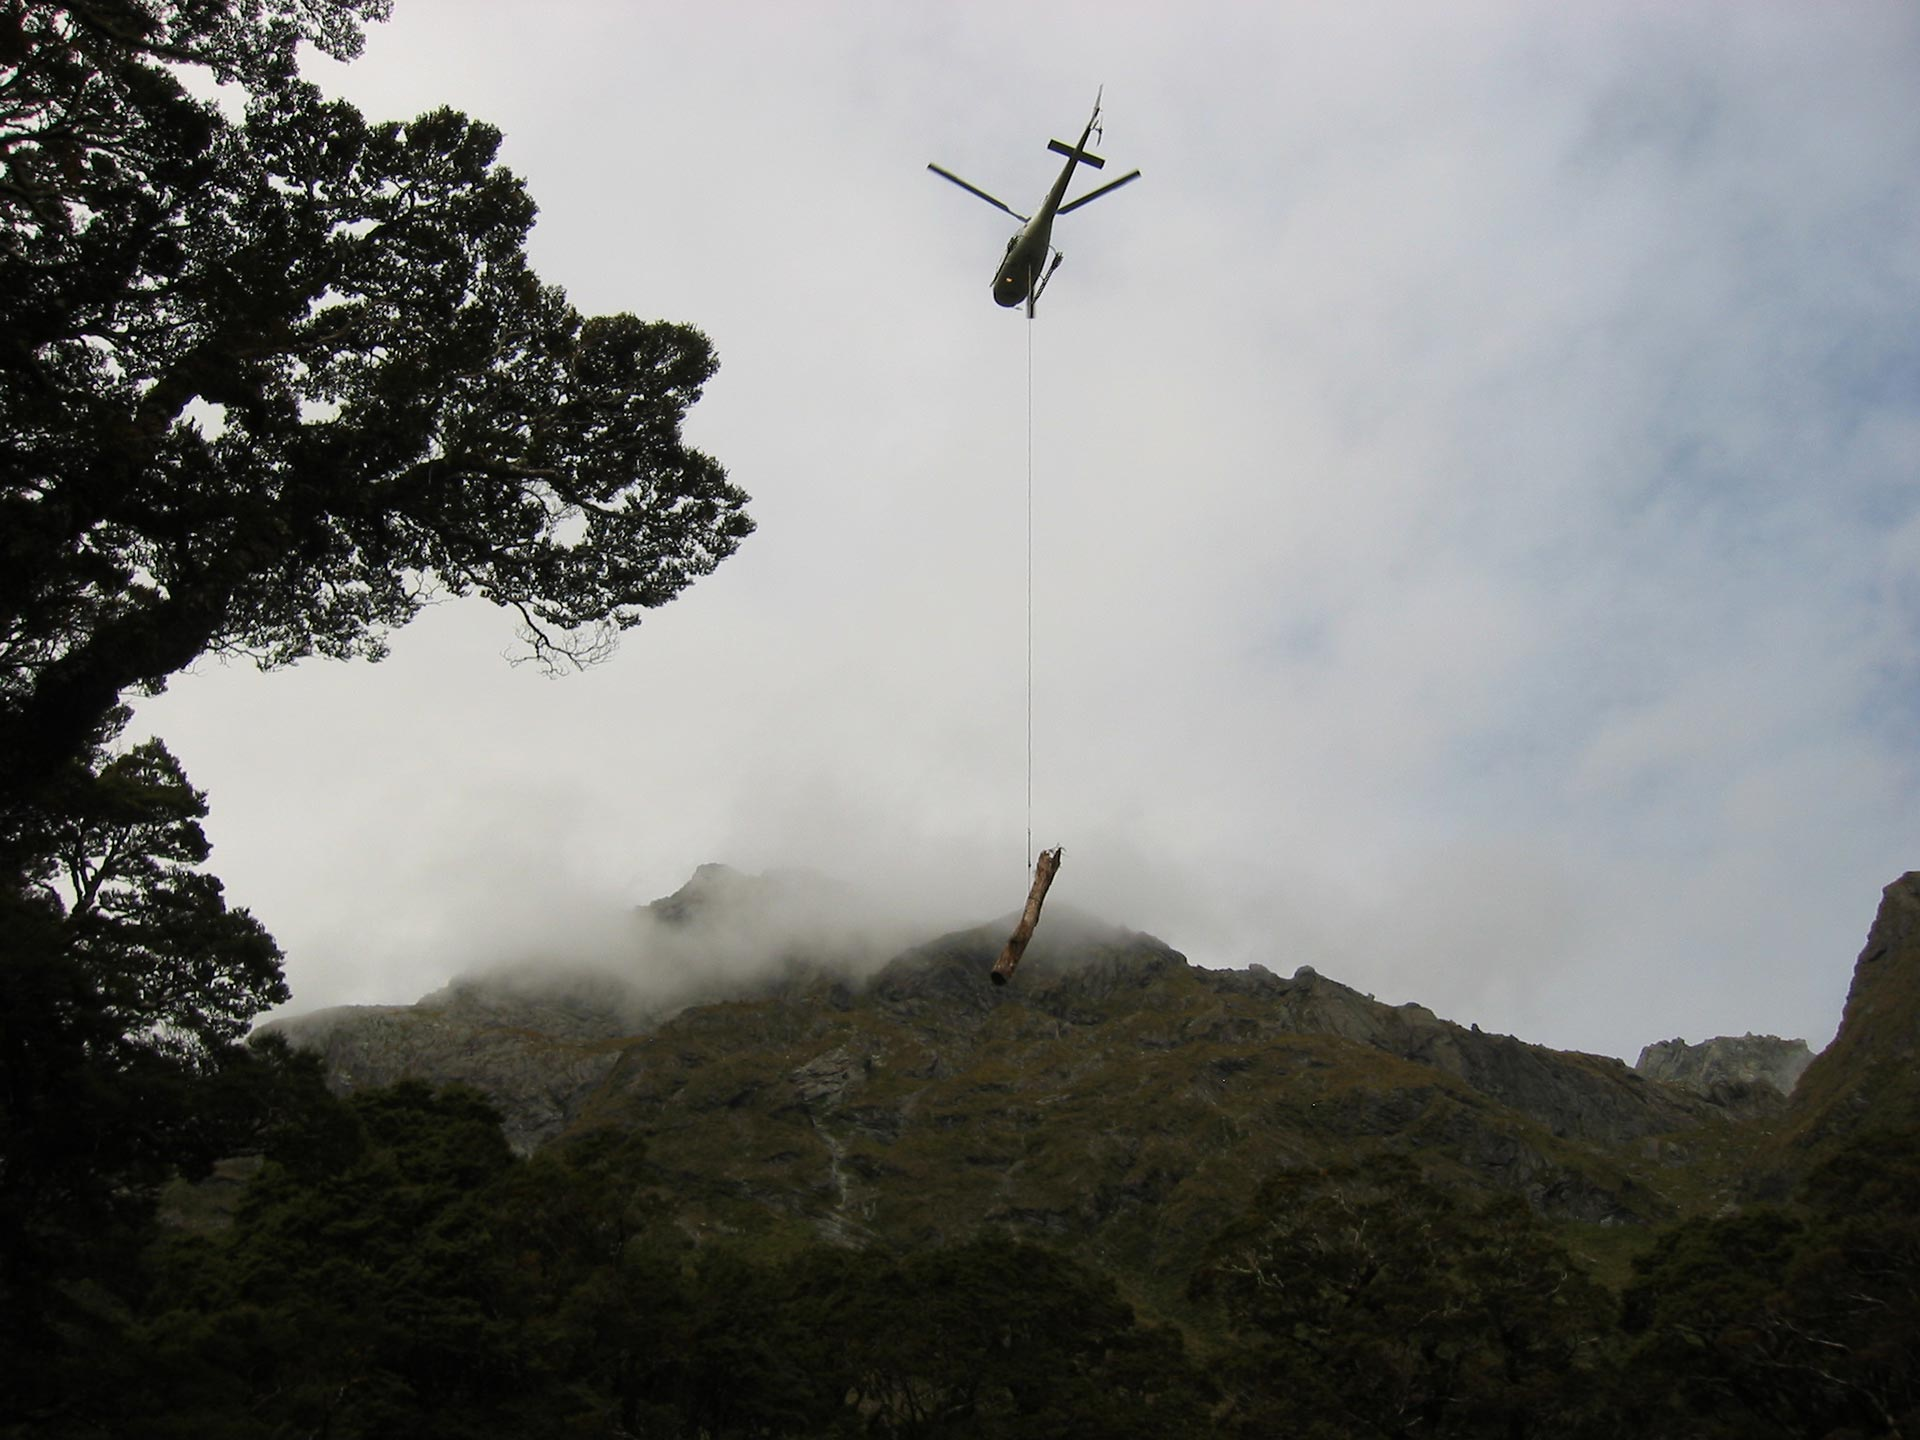 Tree removal - Lake McKenzie, Routeburn Track, Fiordland, New Zealand